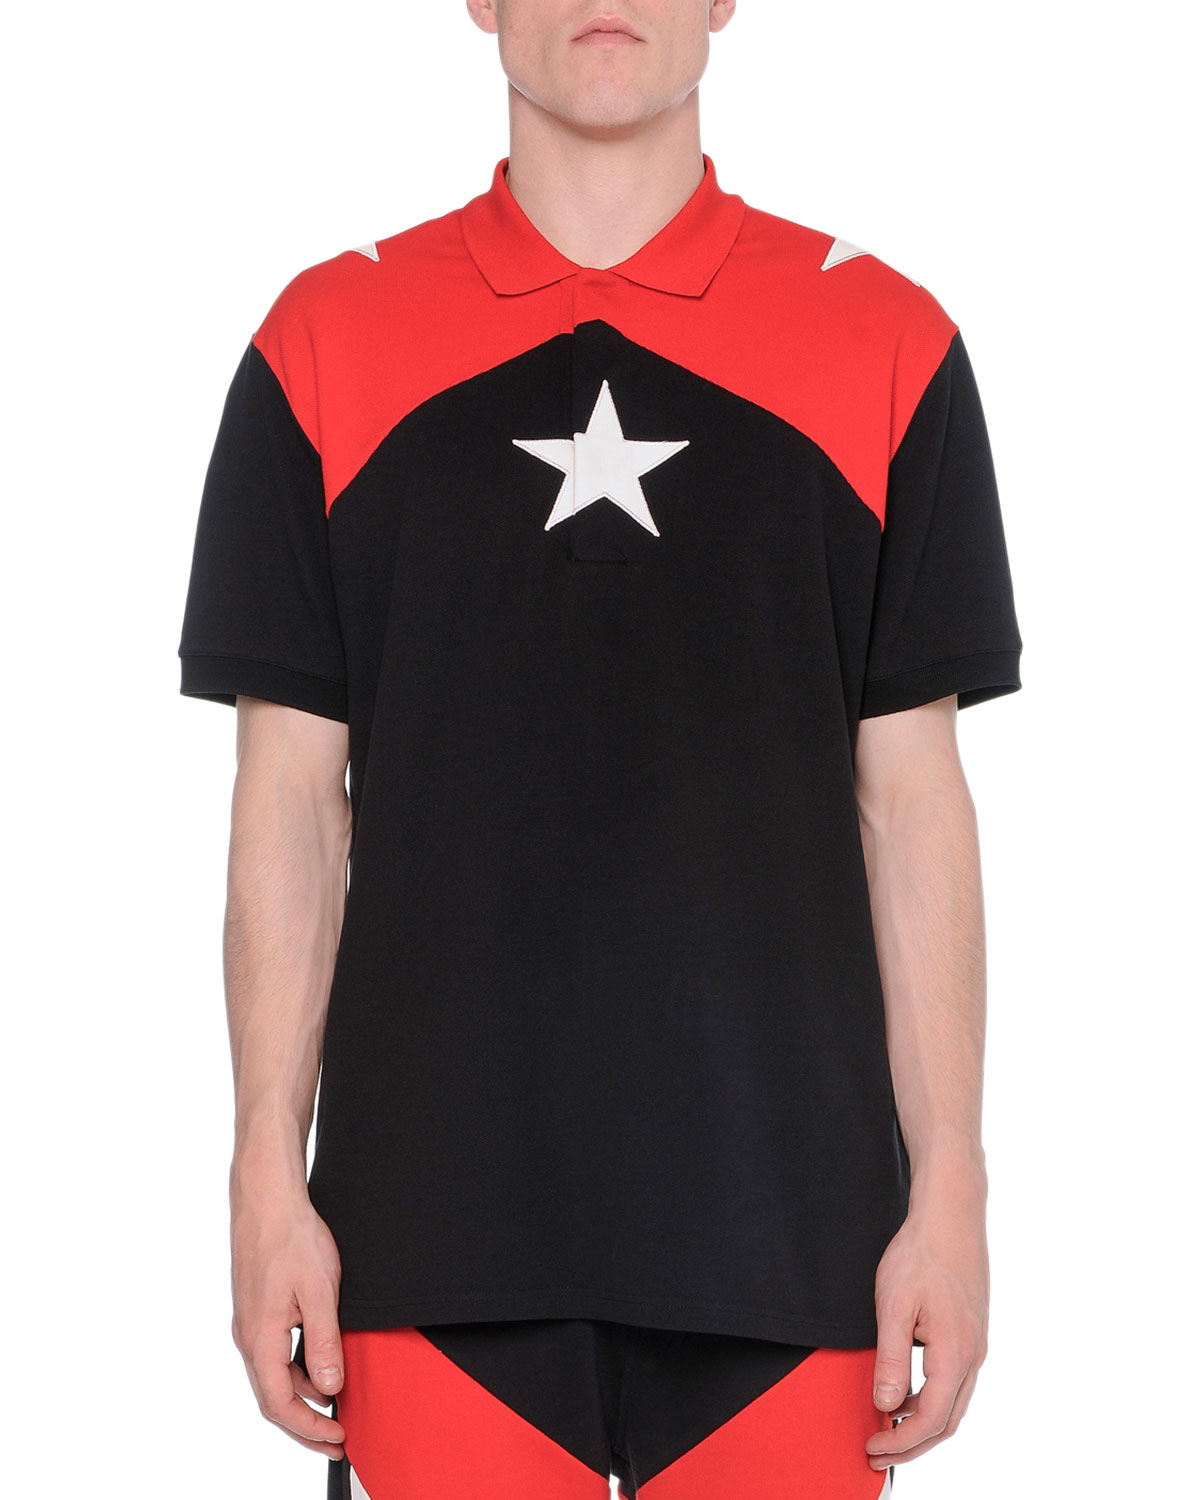 20d1cff9 Givenchy Black Polo Red Stars | The Art of Mike Mignola